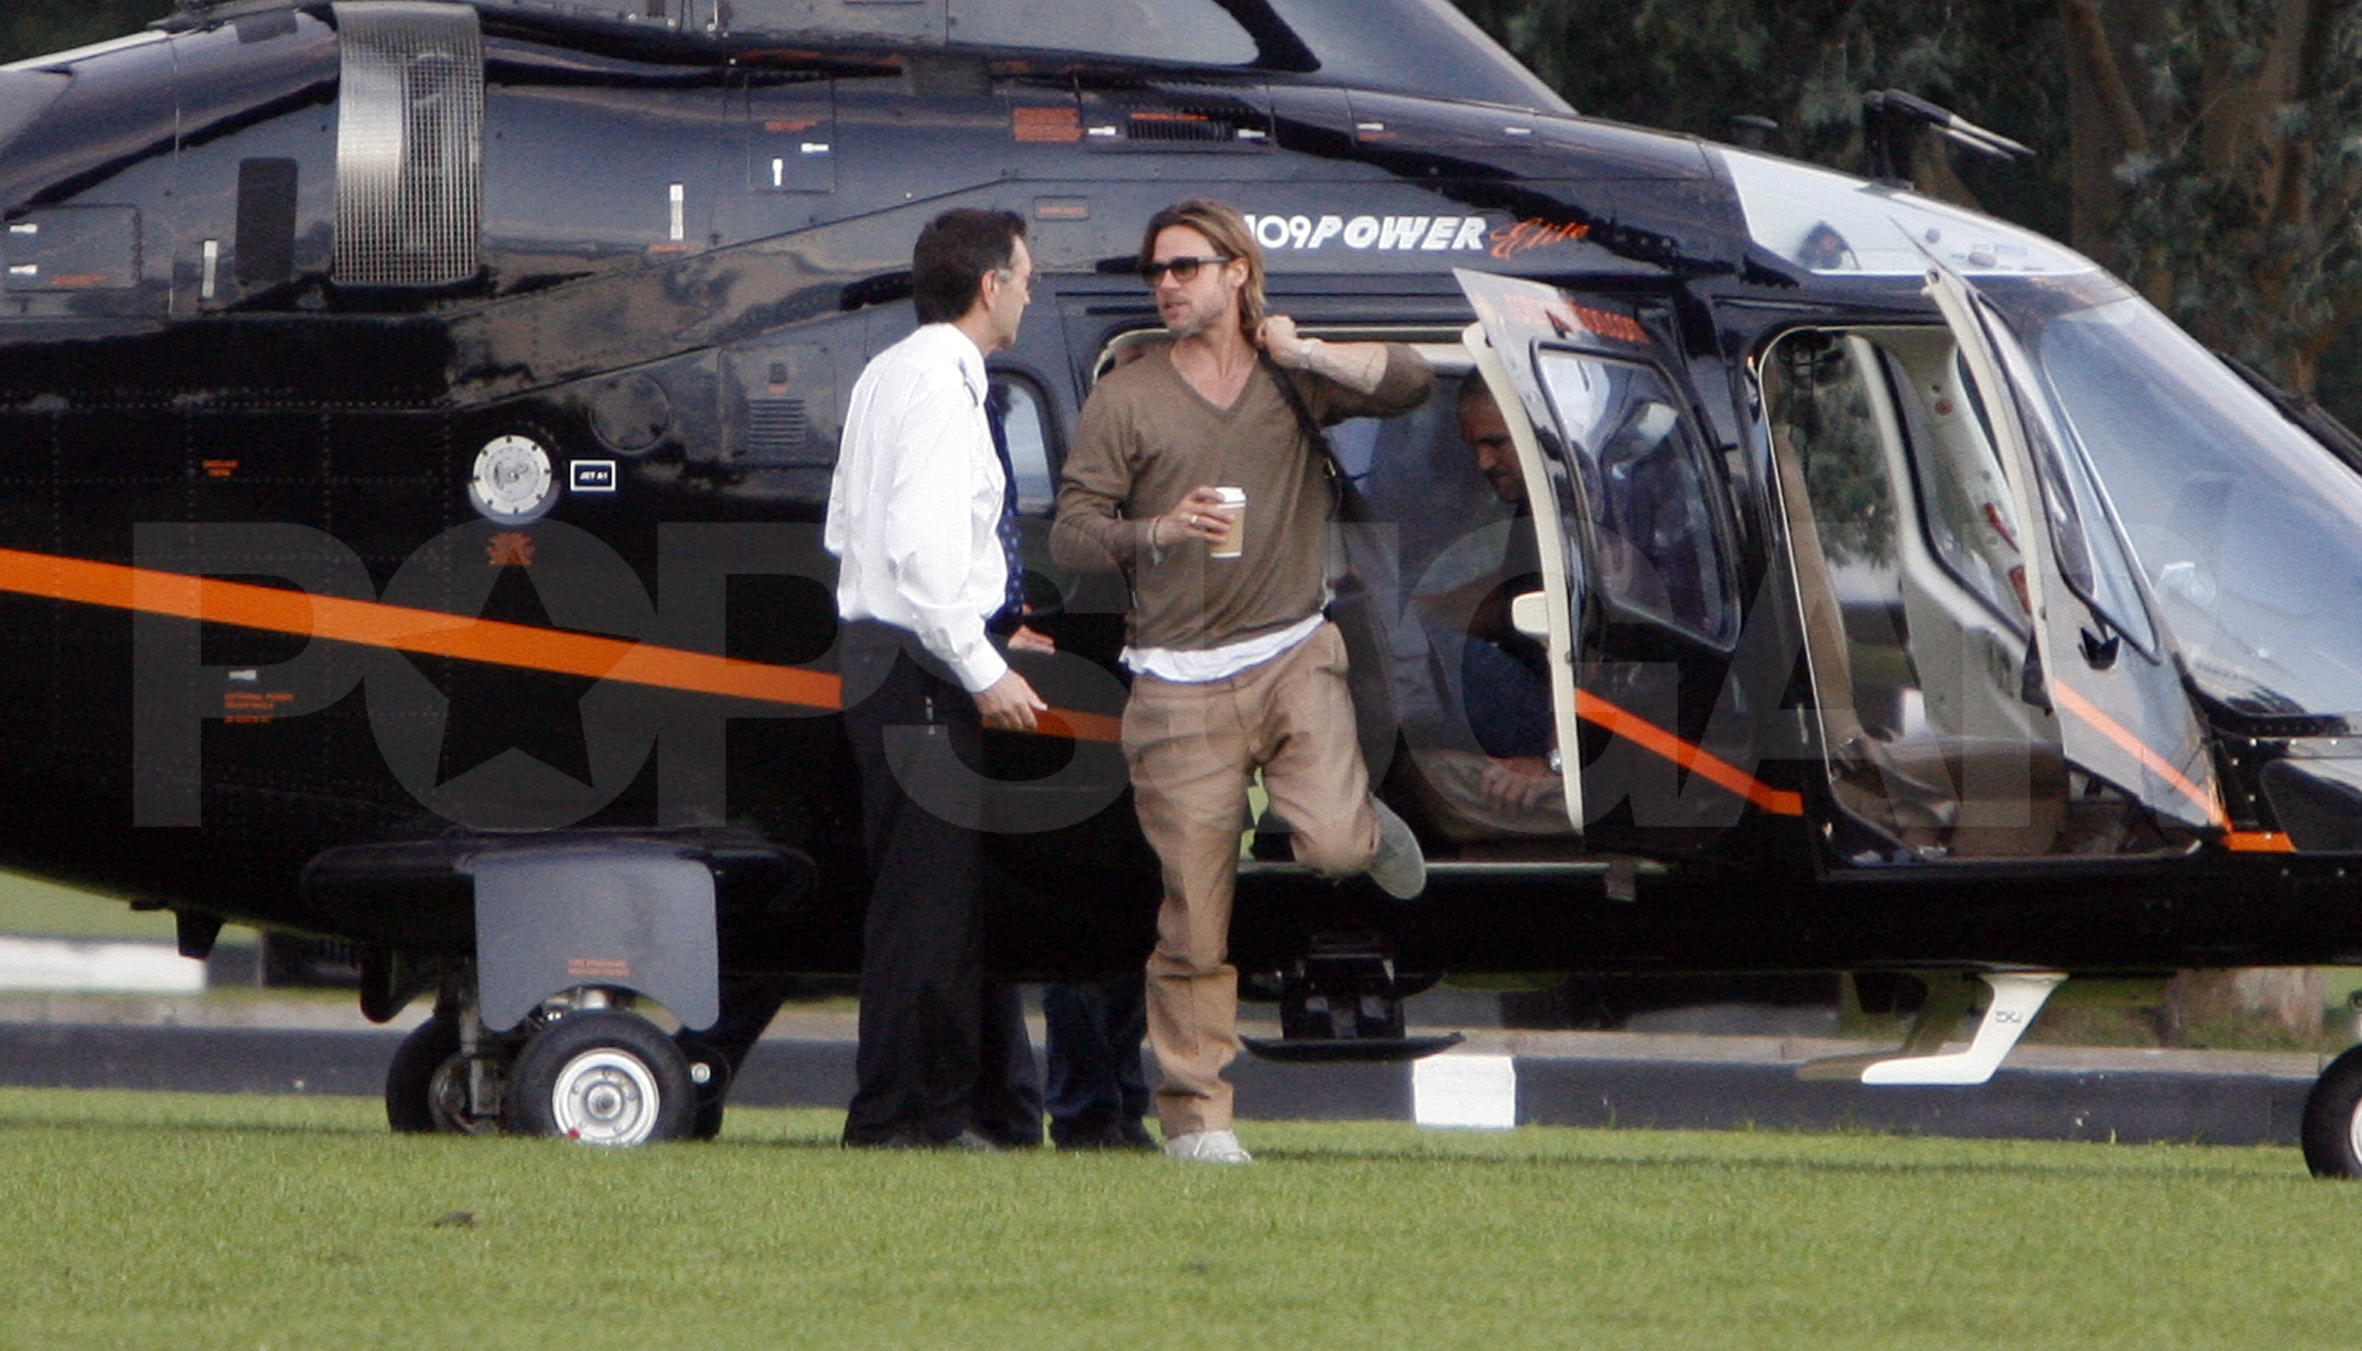 Brad Pitt in a helicopter.